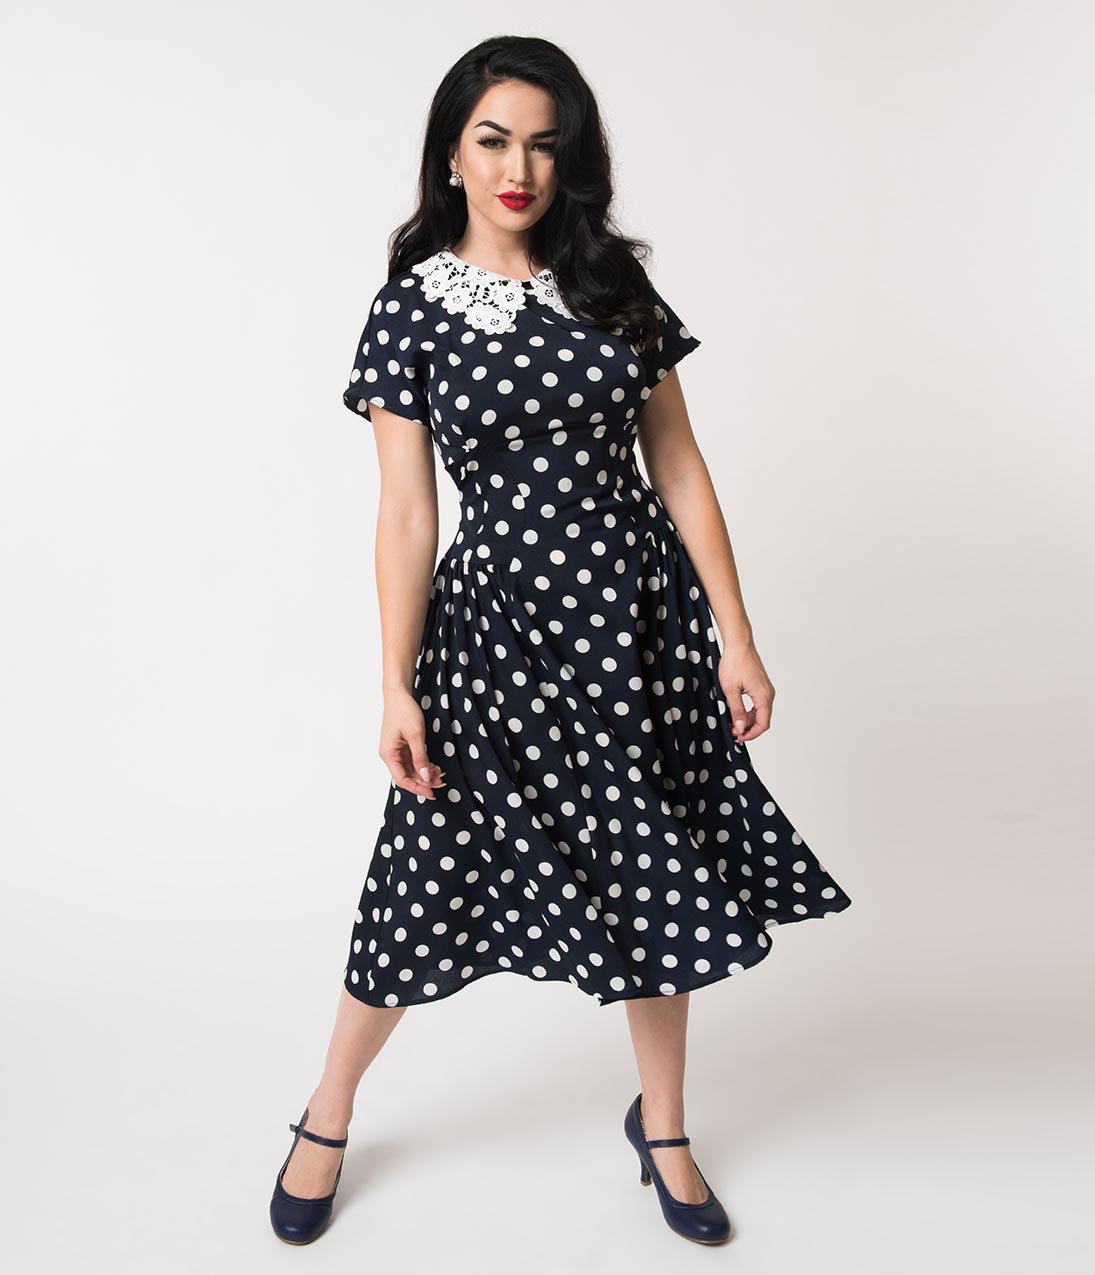 1940s Fashion Advice for Tall Women Unique Vintage 1940S Navy  White Polka Dot Lace Collar Margie Dress $41.00 AT vintagedancer.com